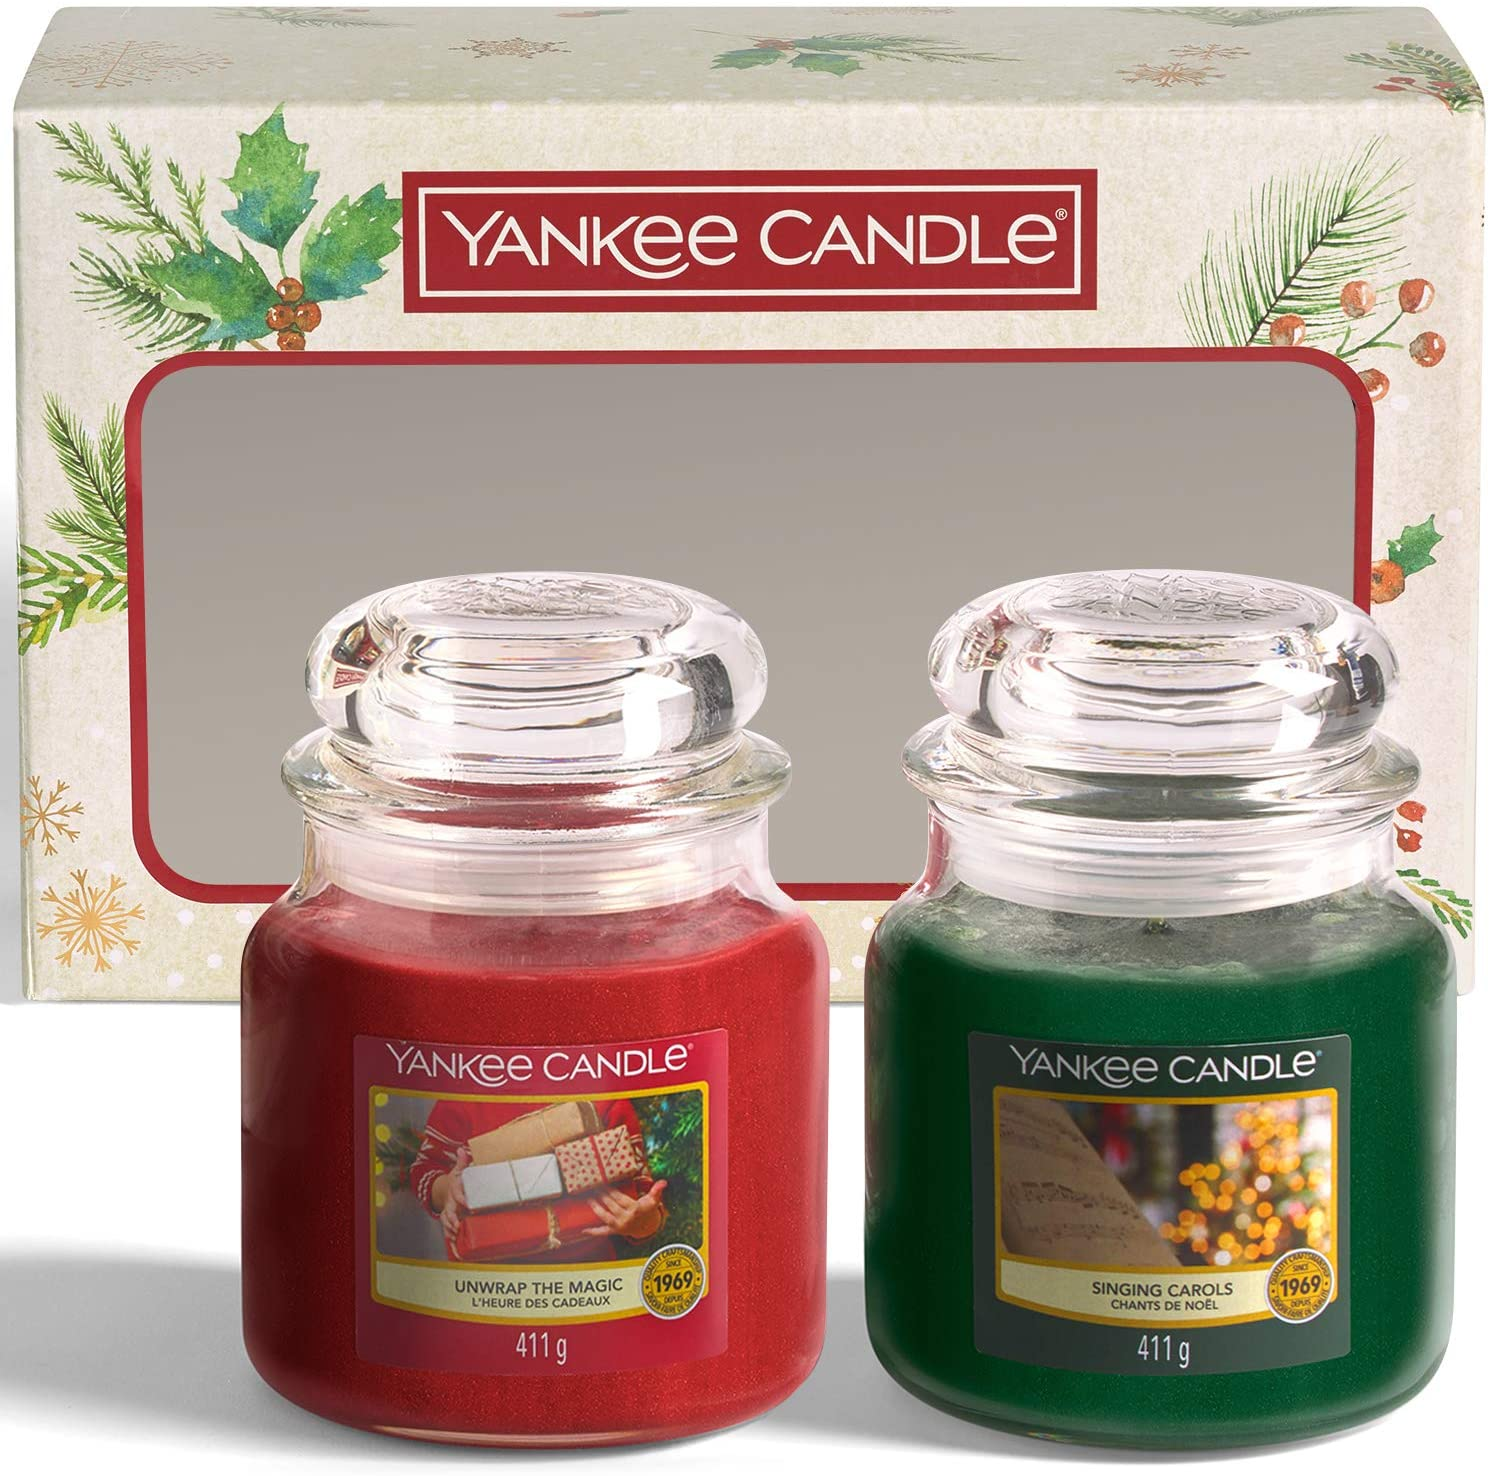 Yankee Candle 2 Medium Jar Candle Gift Set